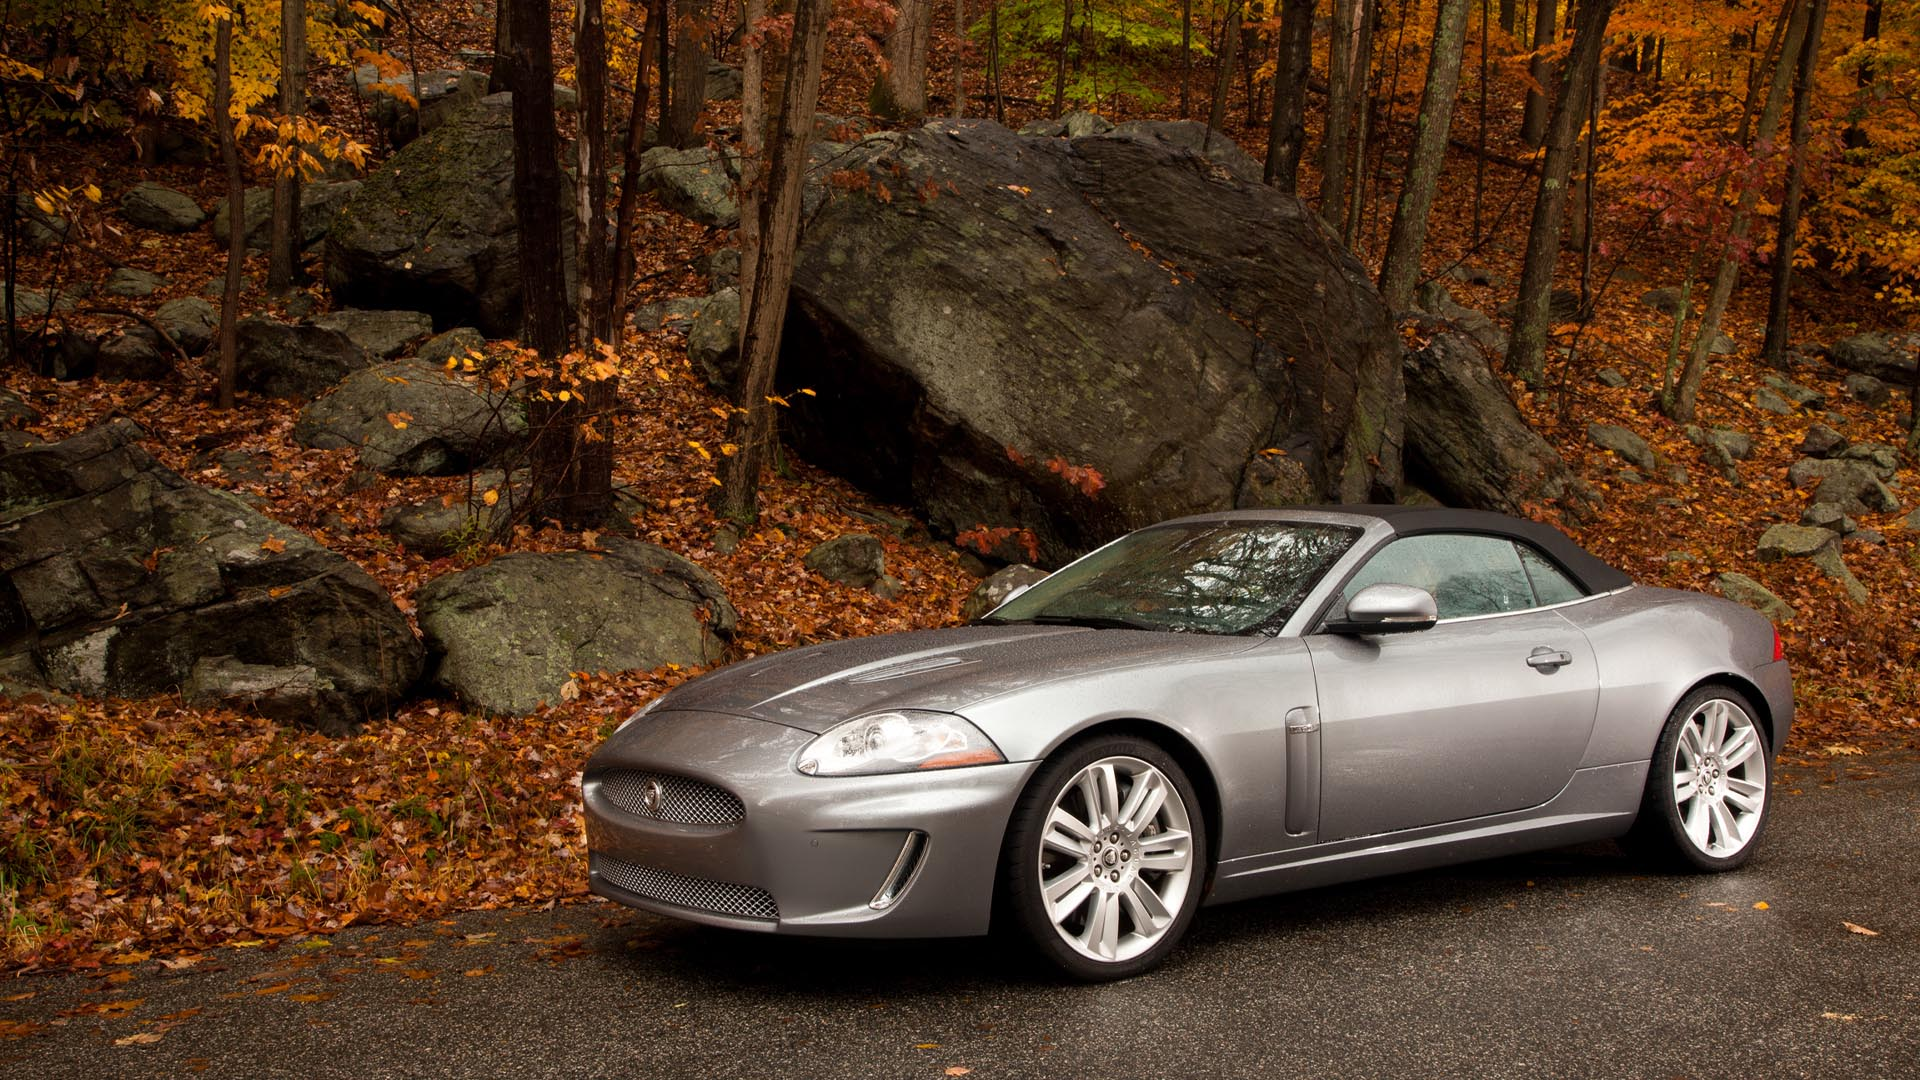 04-Jaguar-XKR-Convertible